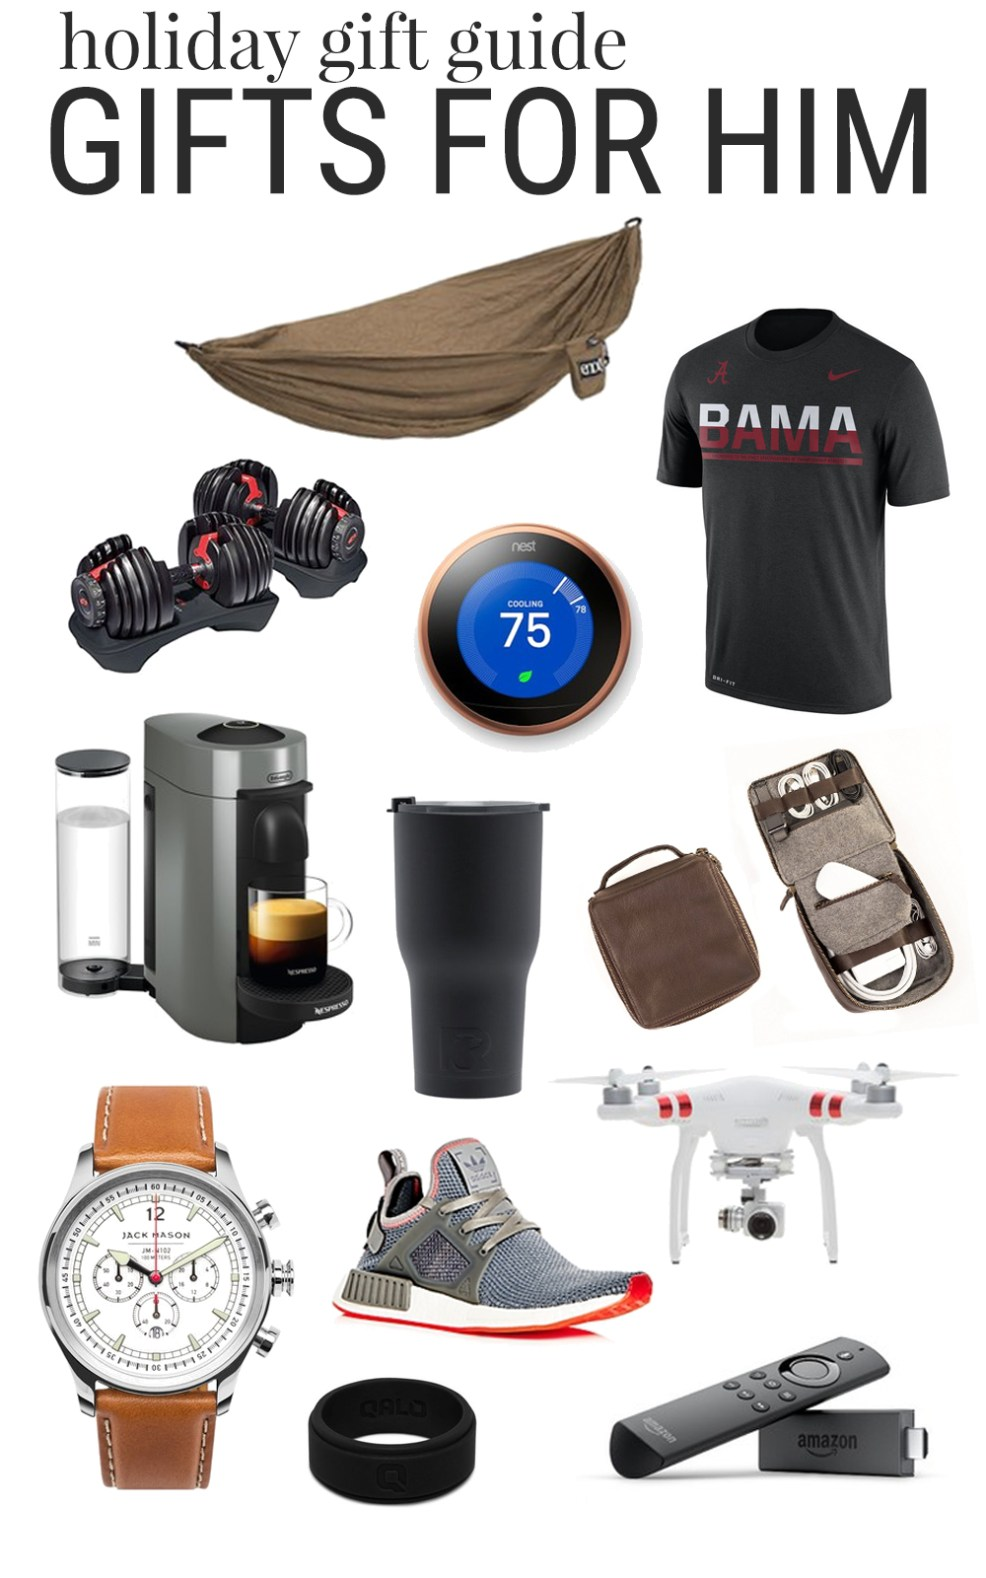 Holiday Gift Guide for Him | Christmas Gift Ideas for Men